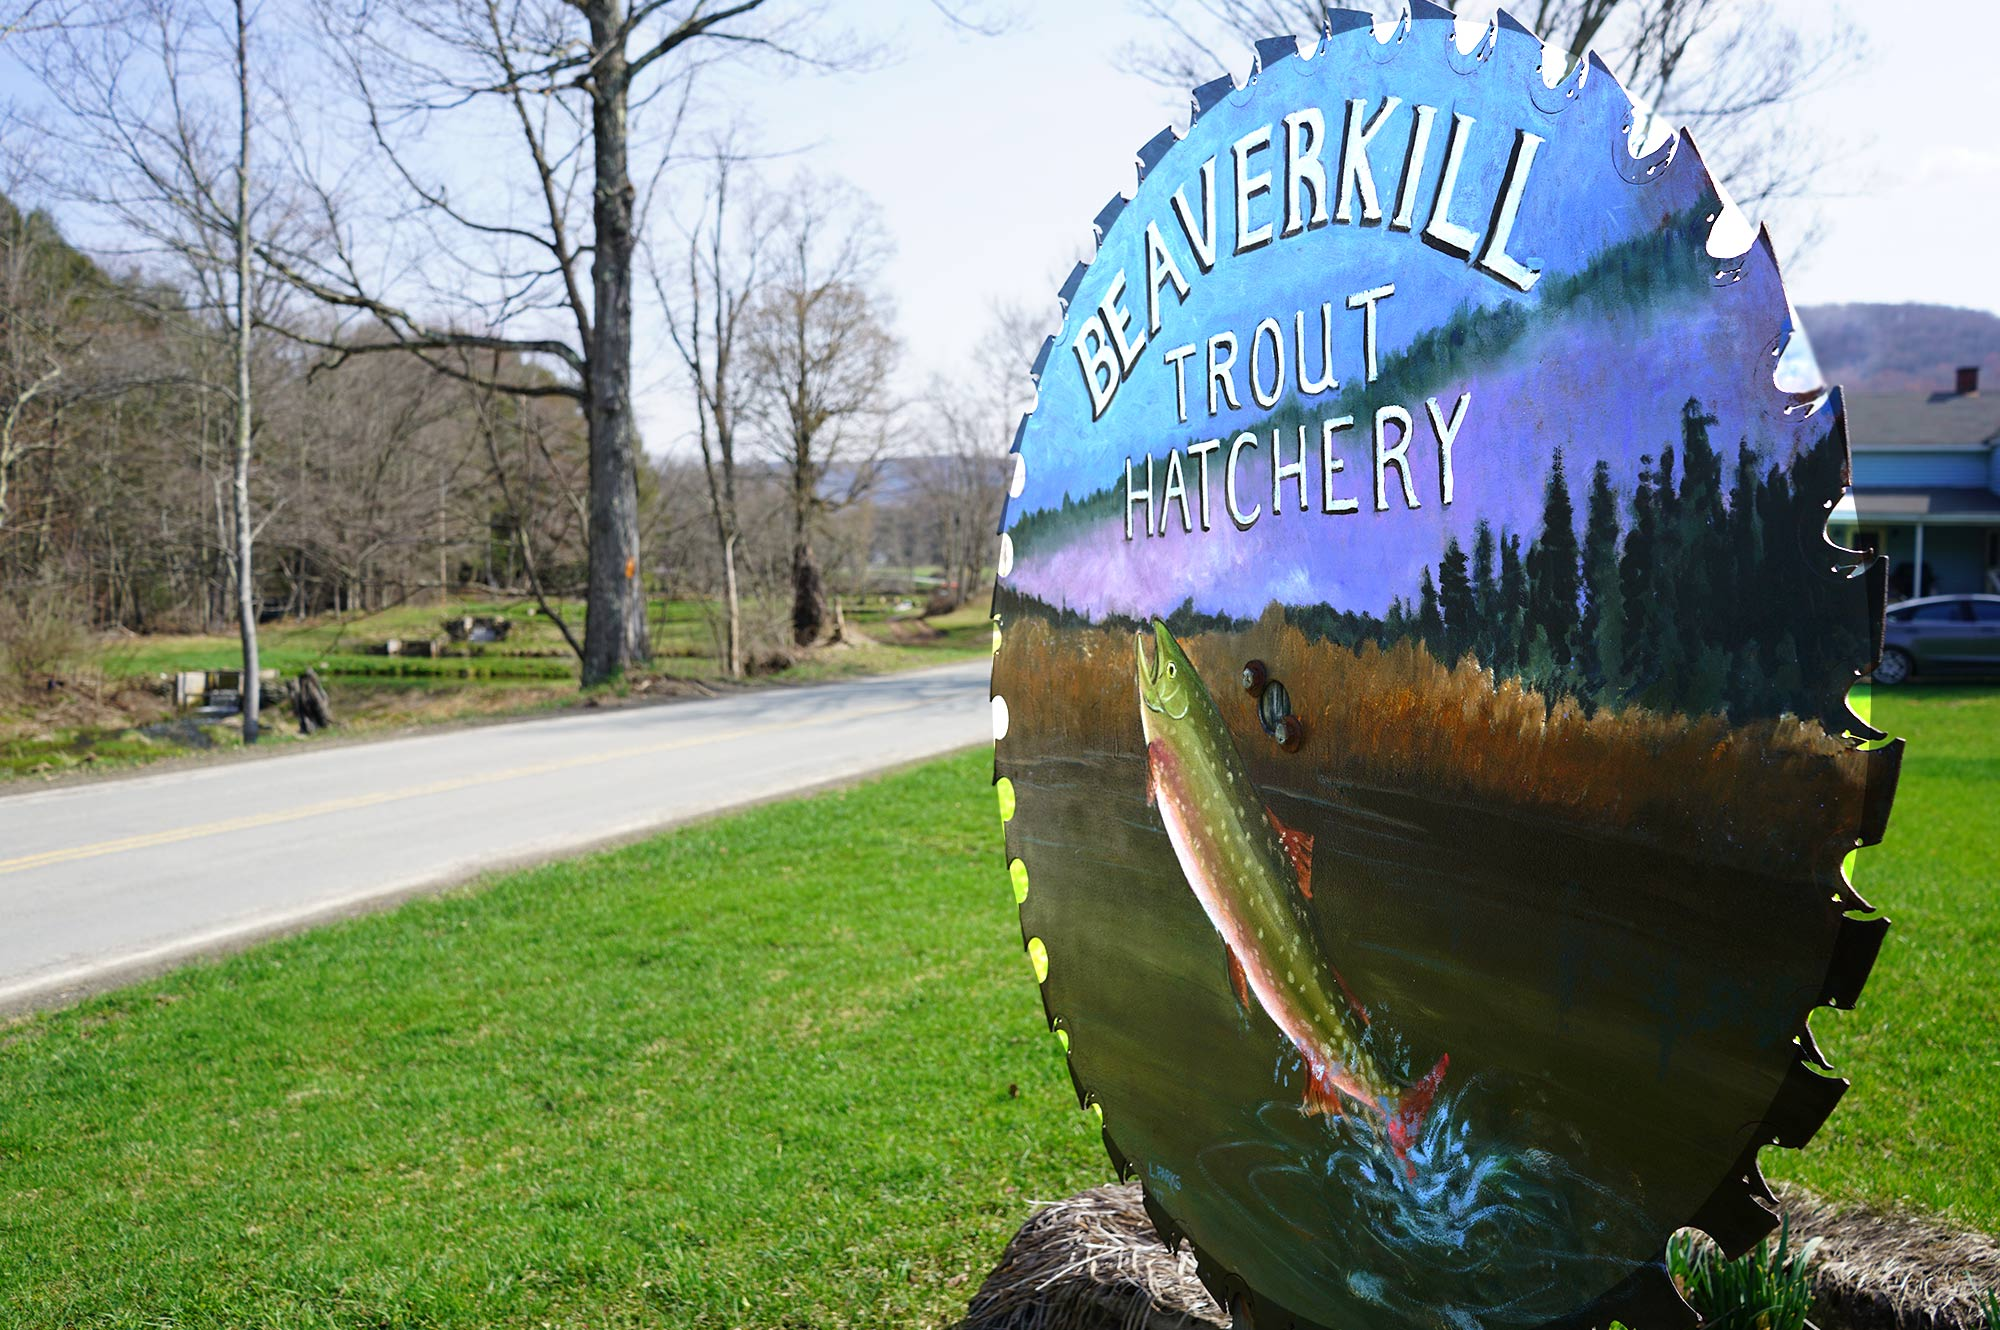 Beaverkill Trout Hatchery | run by fifth generation of the Shaver family